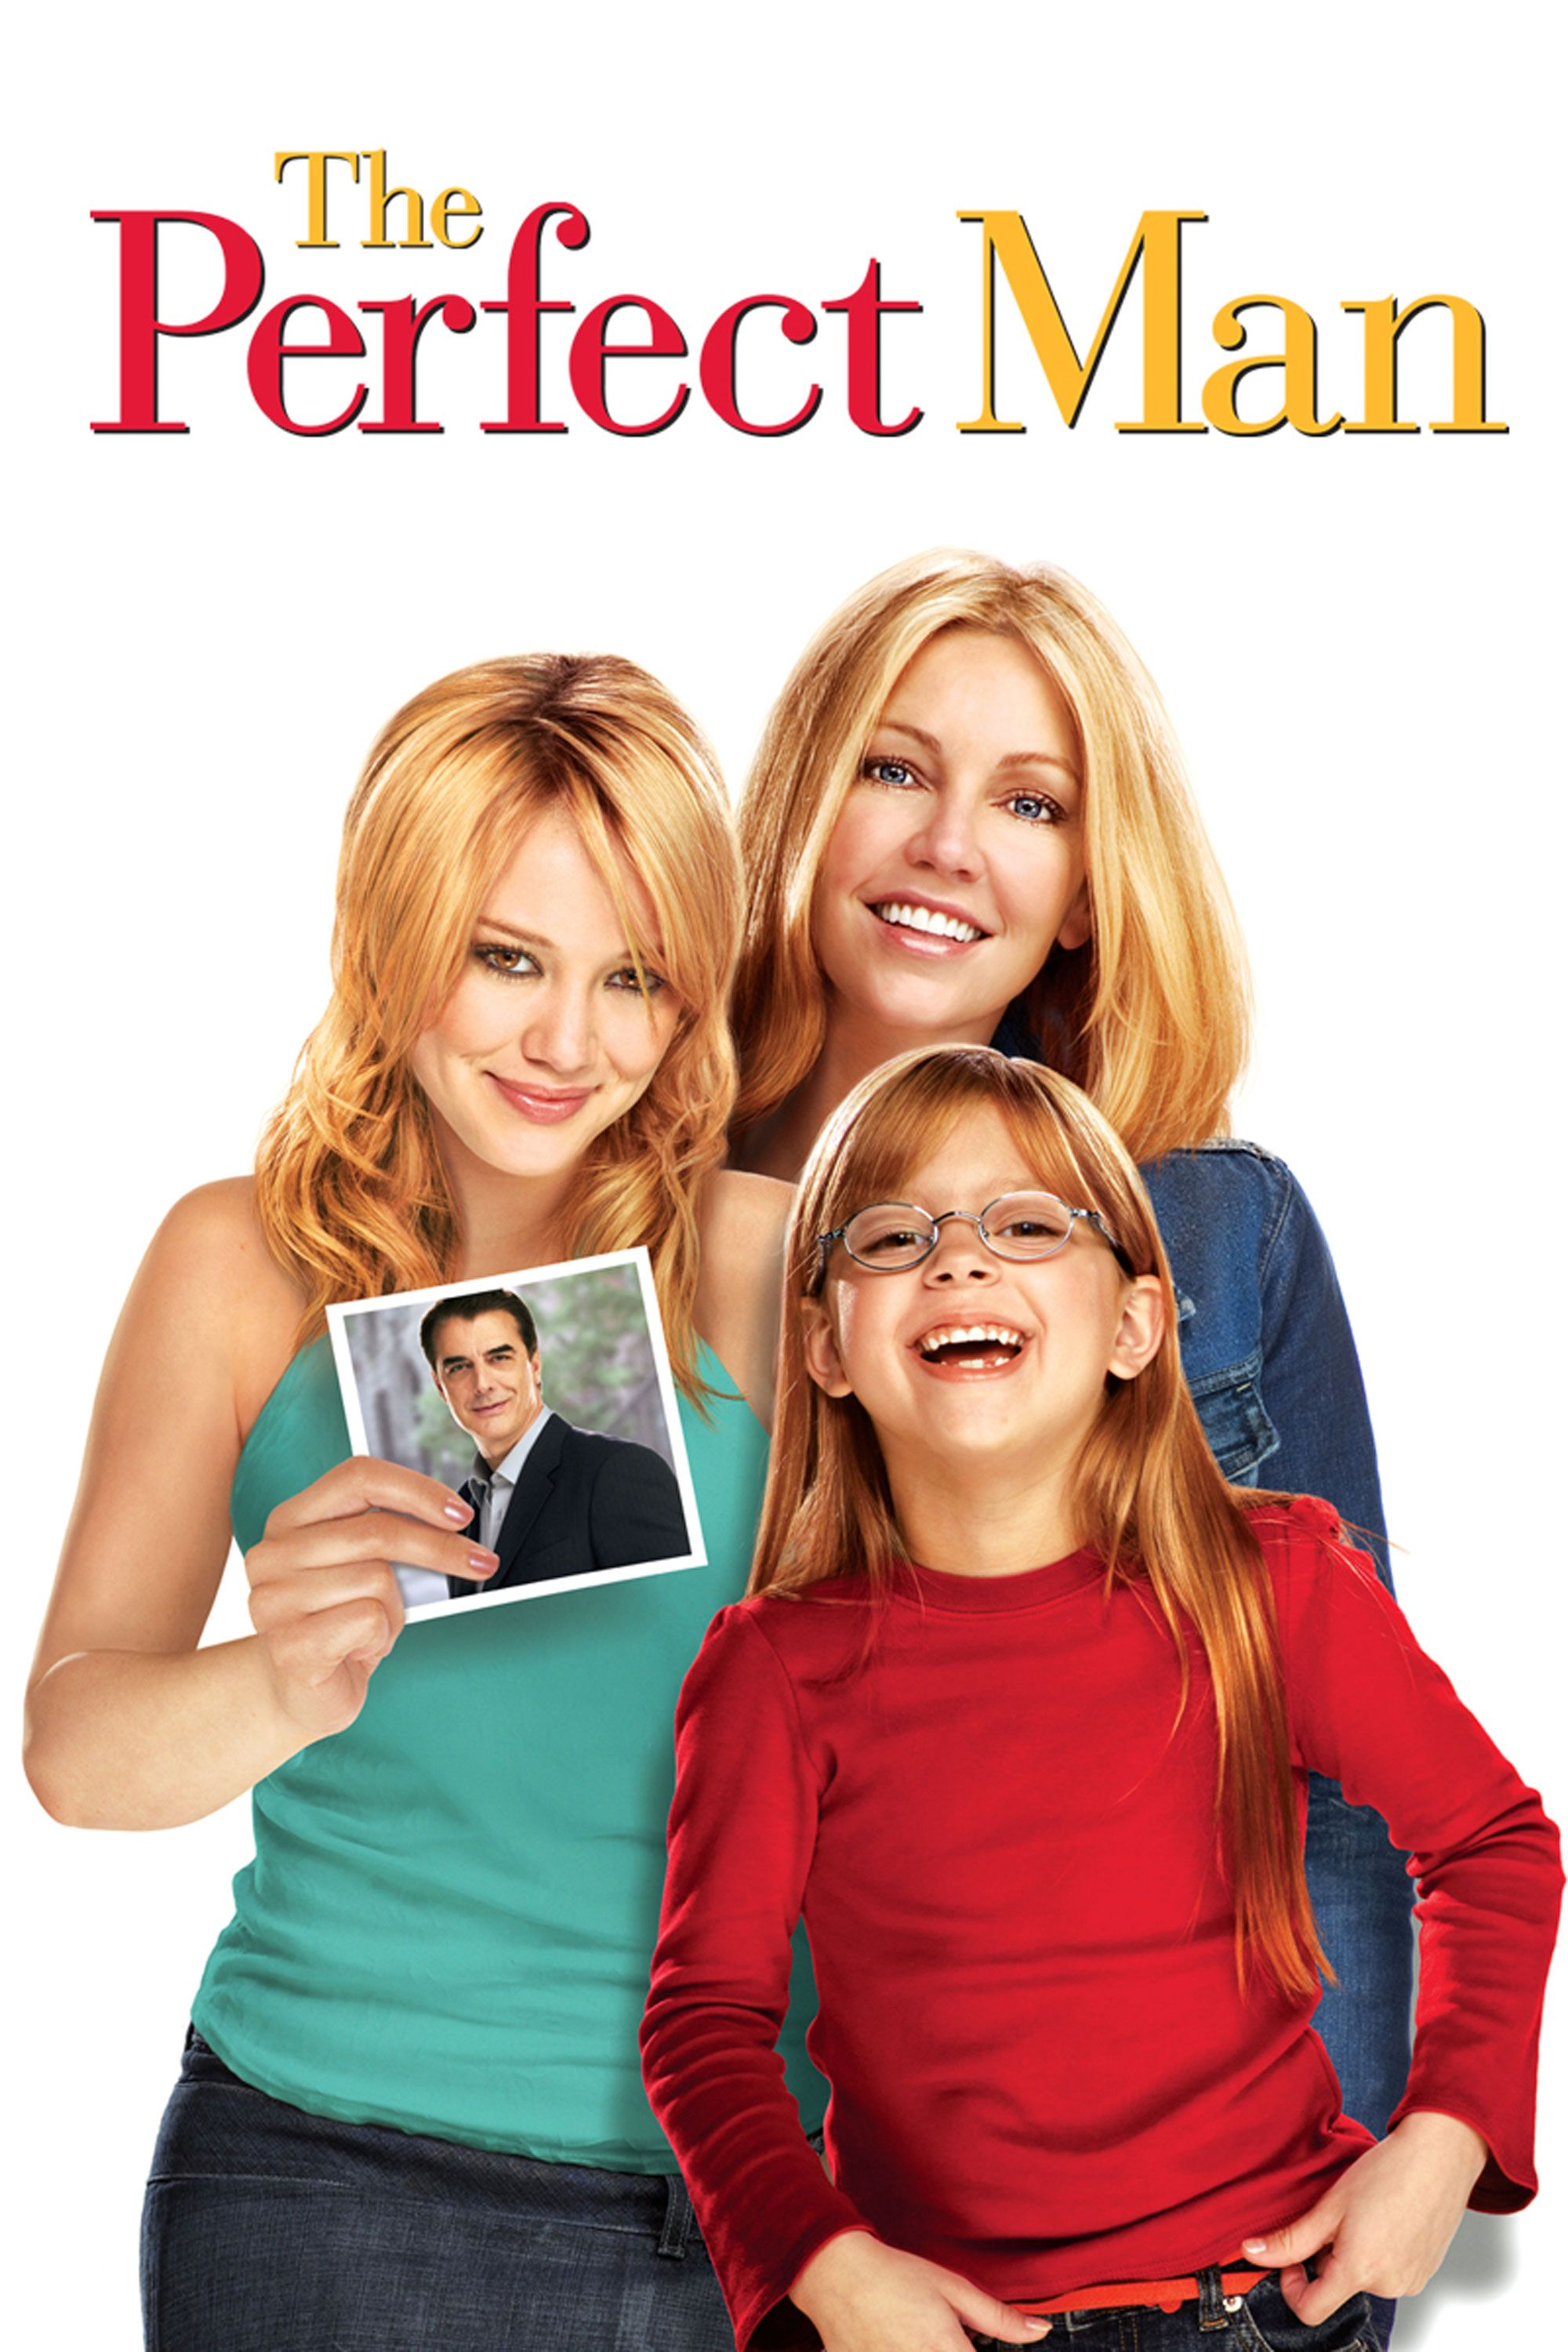 The Perfect Man Full Movie Free